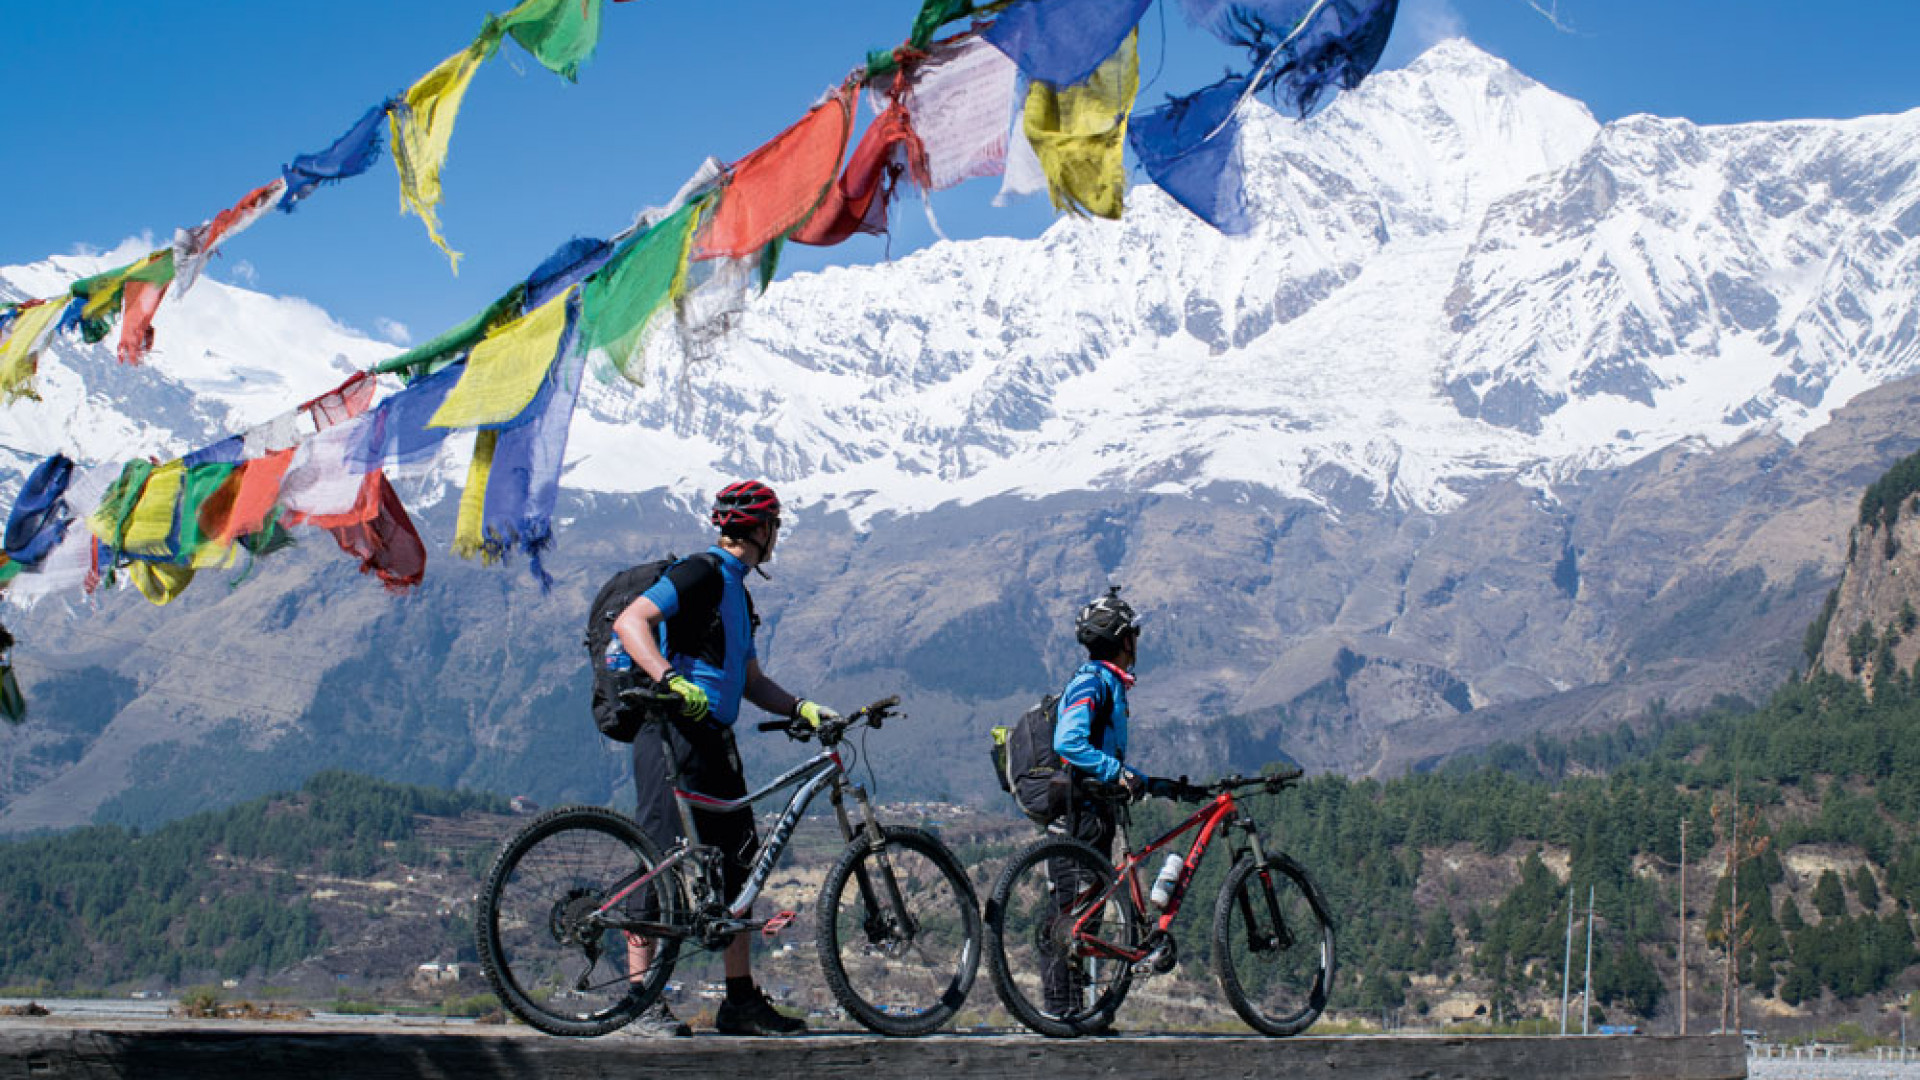 Mountain biking at the foot of the Himalayas in Nepal